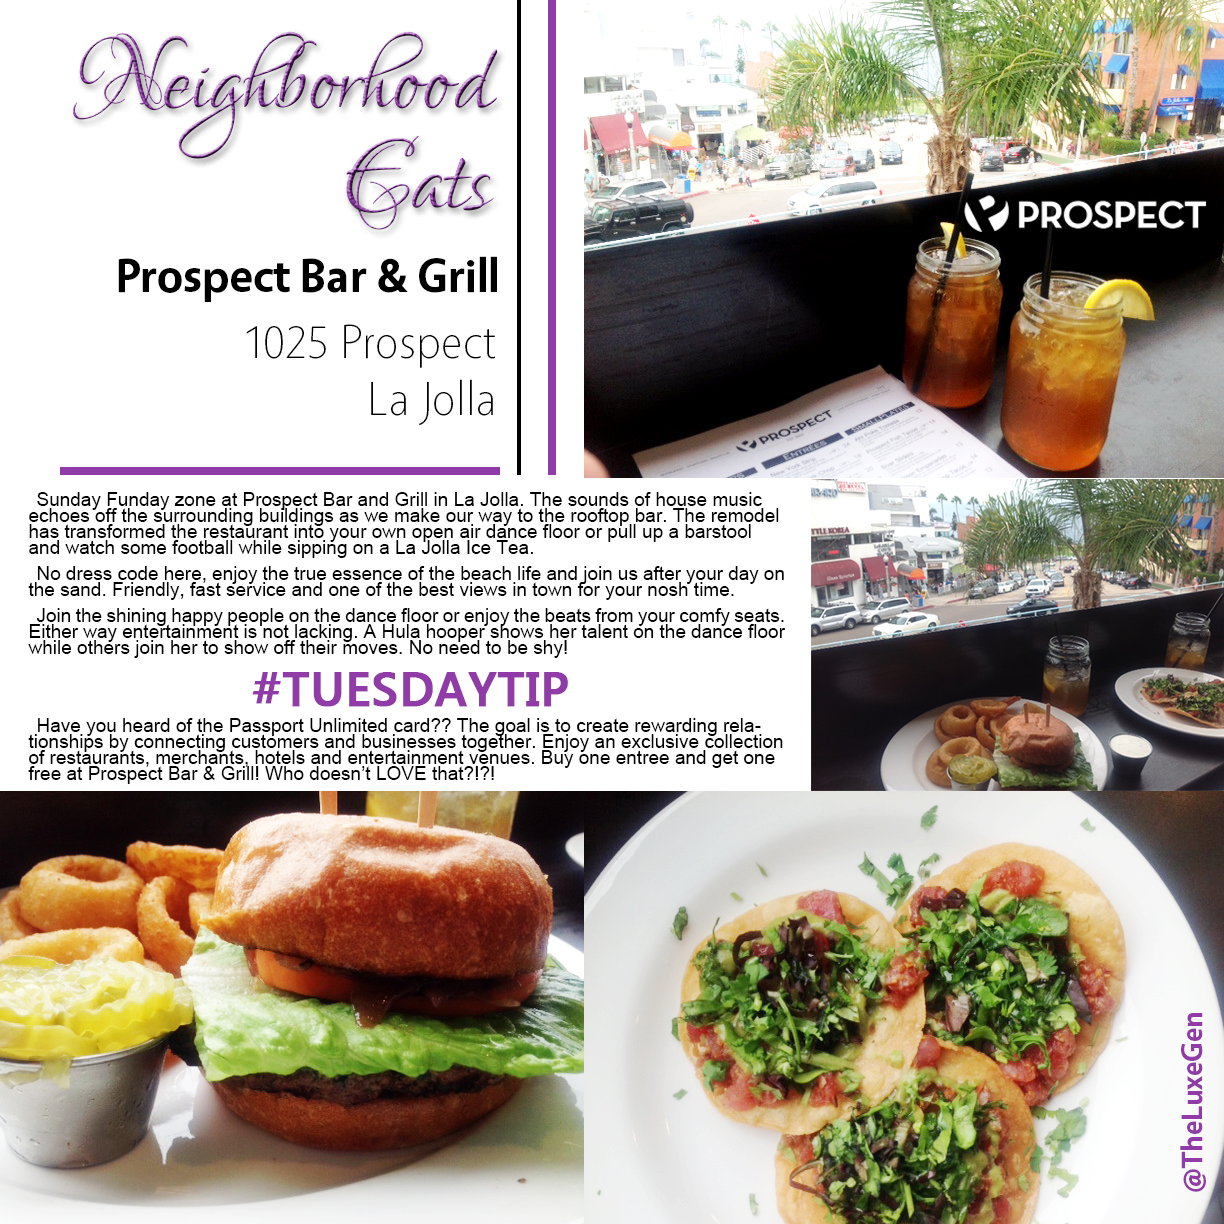 Neighborhood Eats, Tuesday Tip, Passport Unlimited, Fine Dining, Discounts, San Diego, La Jolla